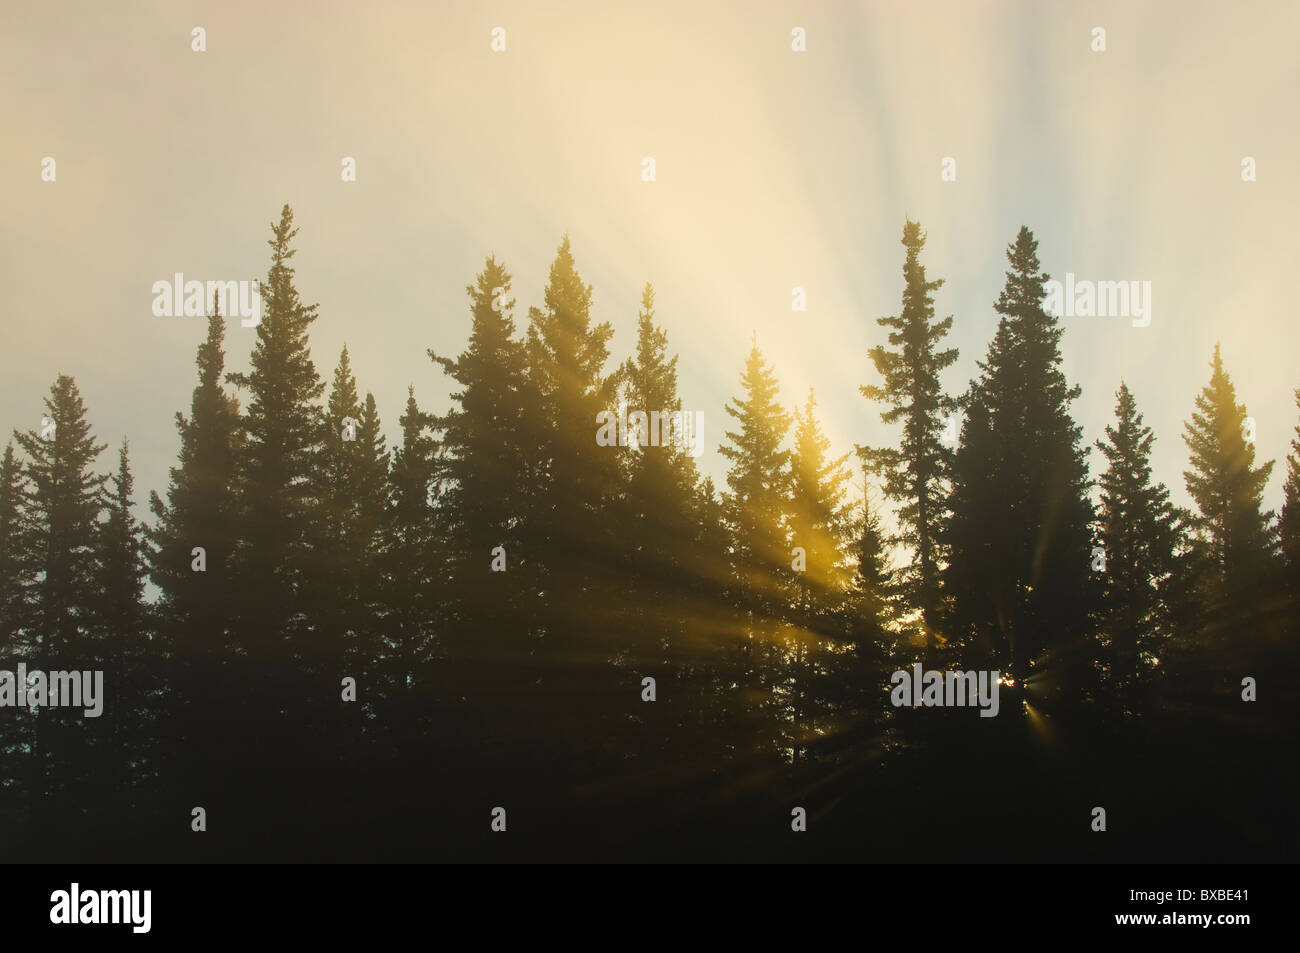 Sunlight shinning through the conifer trees - Stock Image